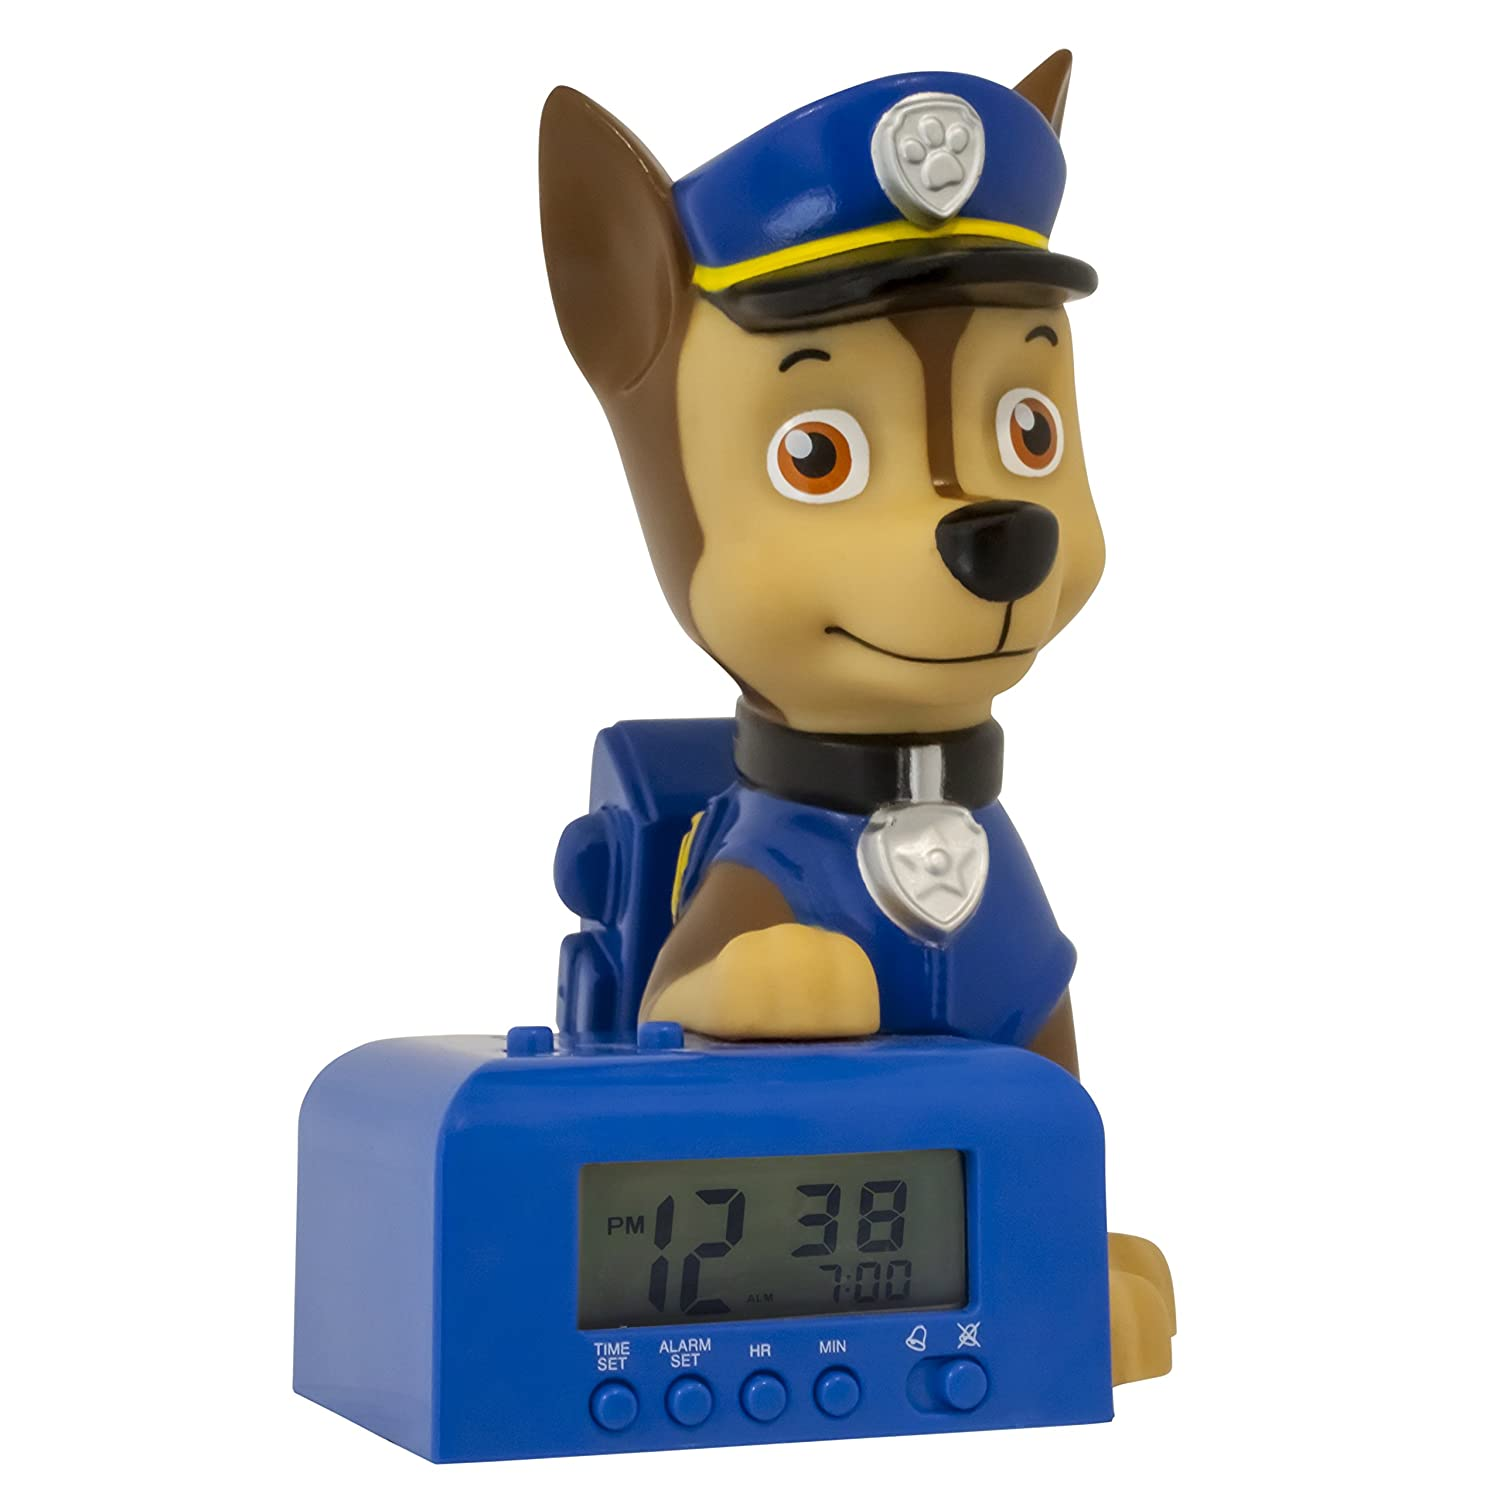 Bulb Botz Paw Patrol 2021302 Chase Kids Night Light Alarm Clock with Characterised Sound, 5.5 inches Tall